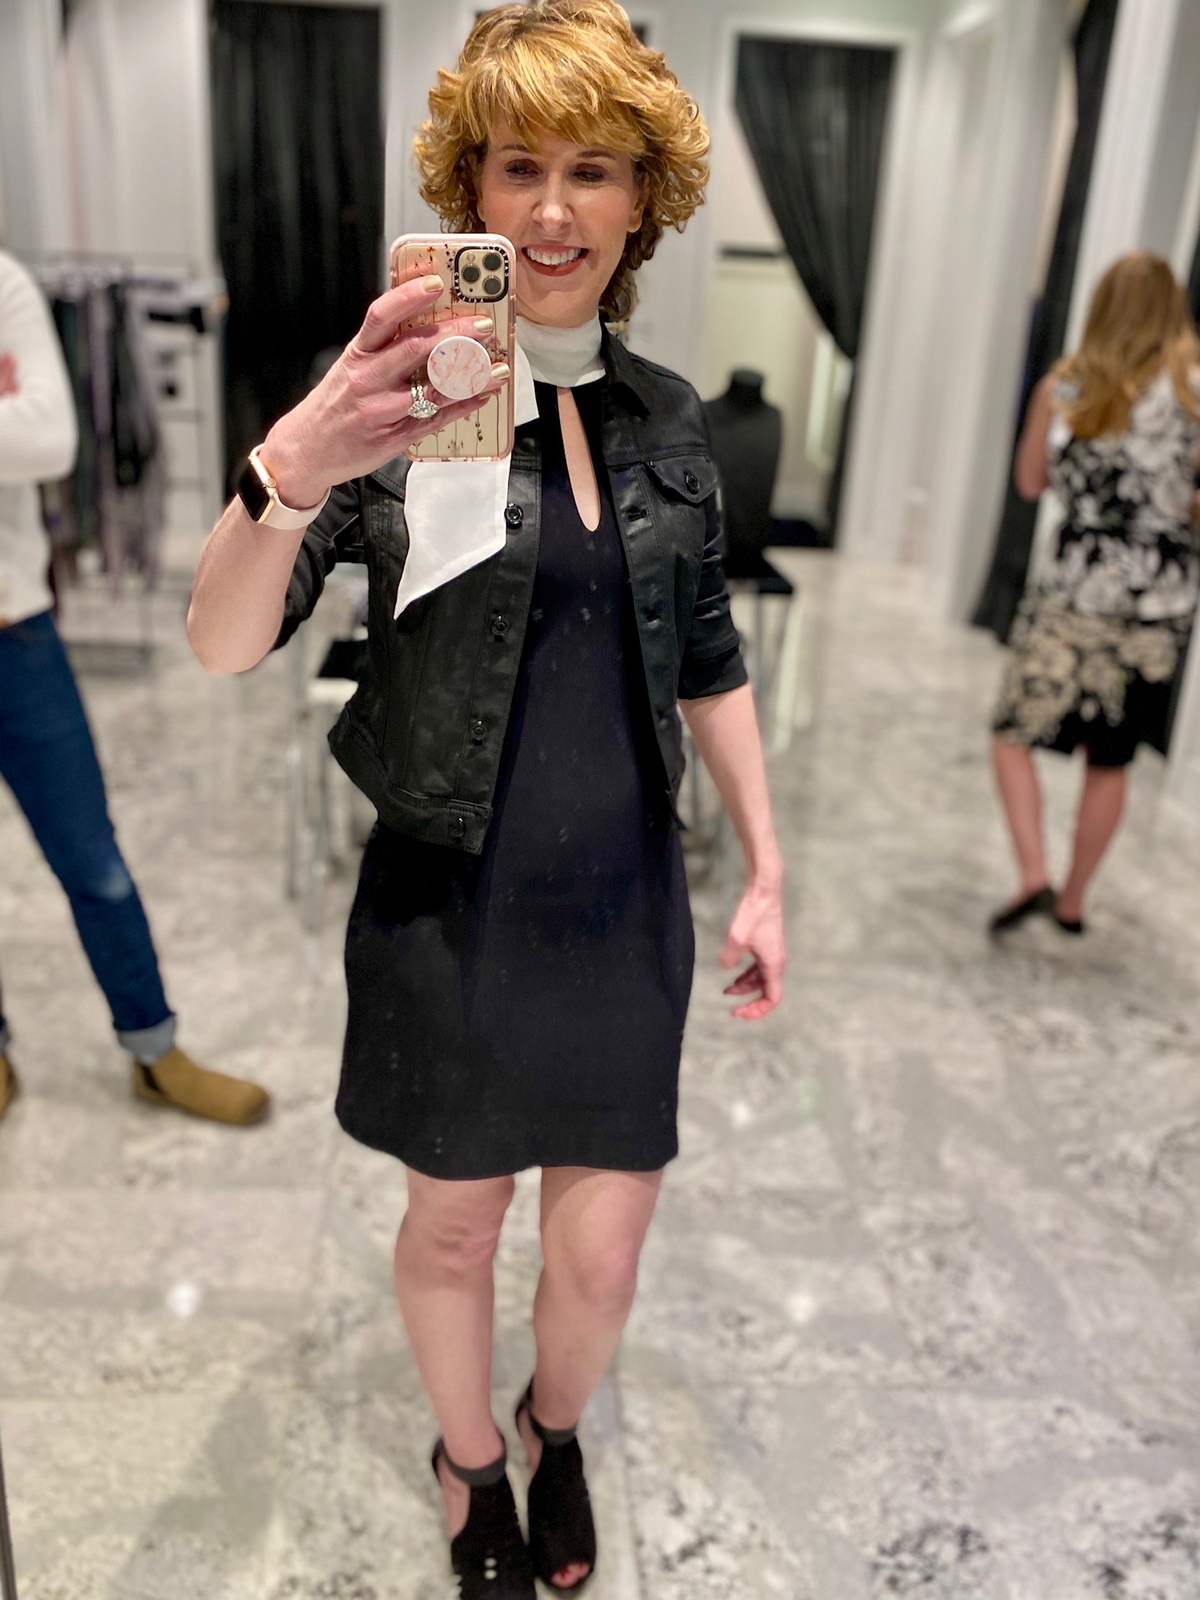 Mirror selfie of woman over 50 wearing a black dress and jacket with white bow at the neck